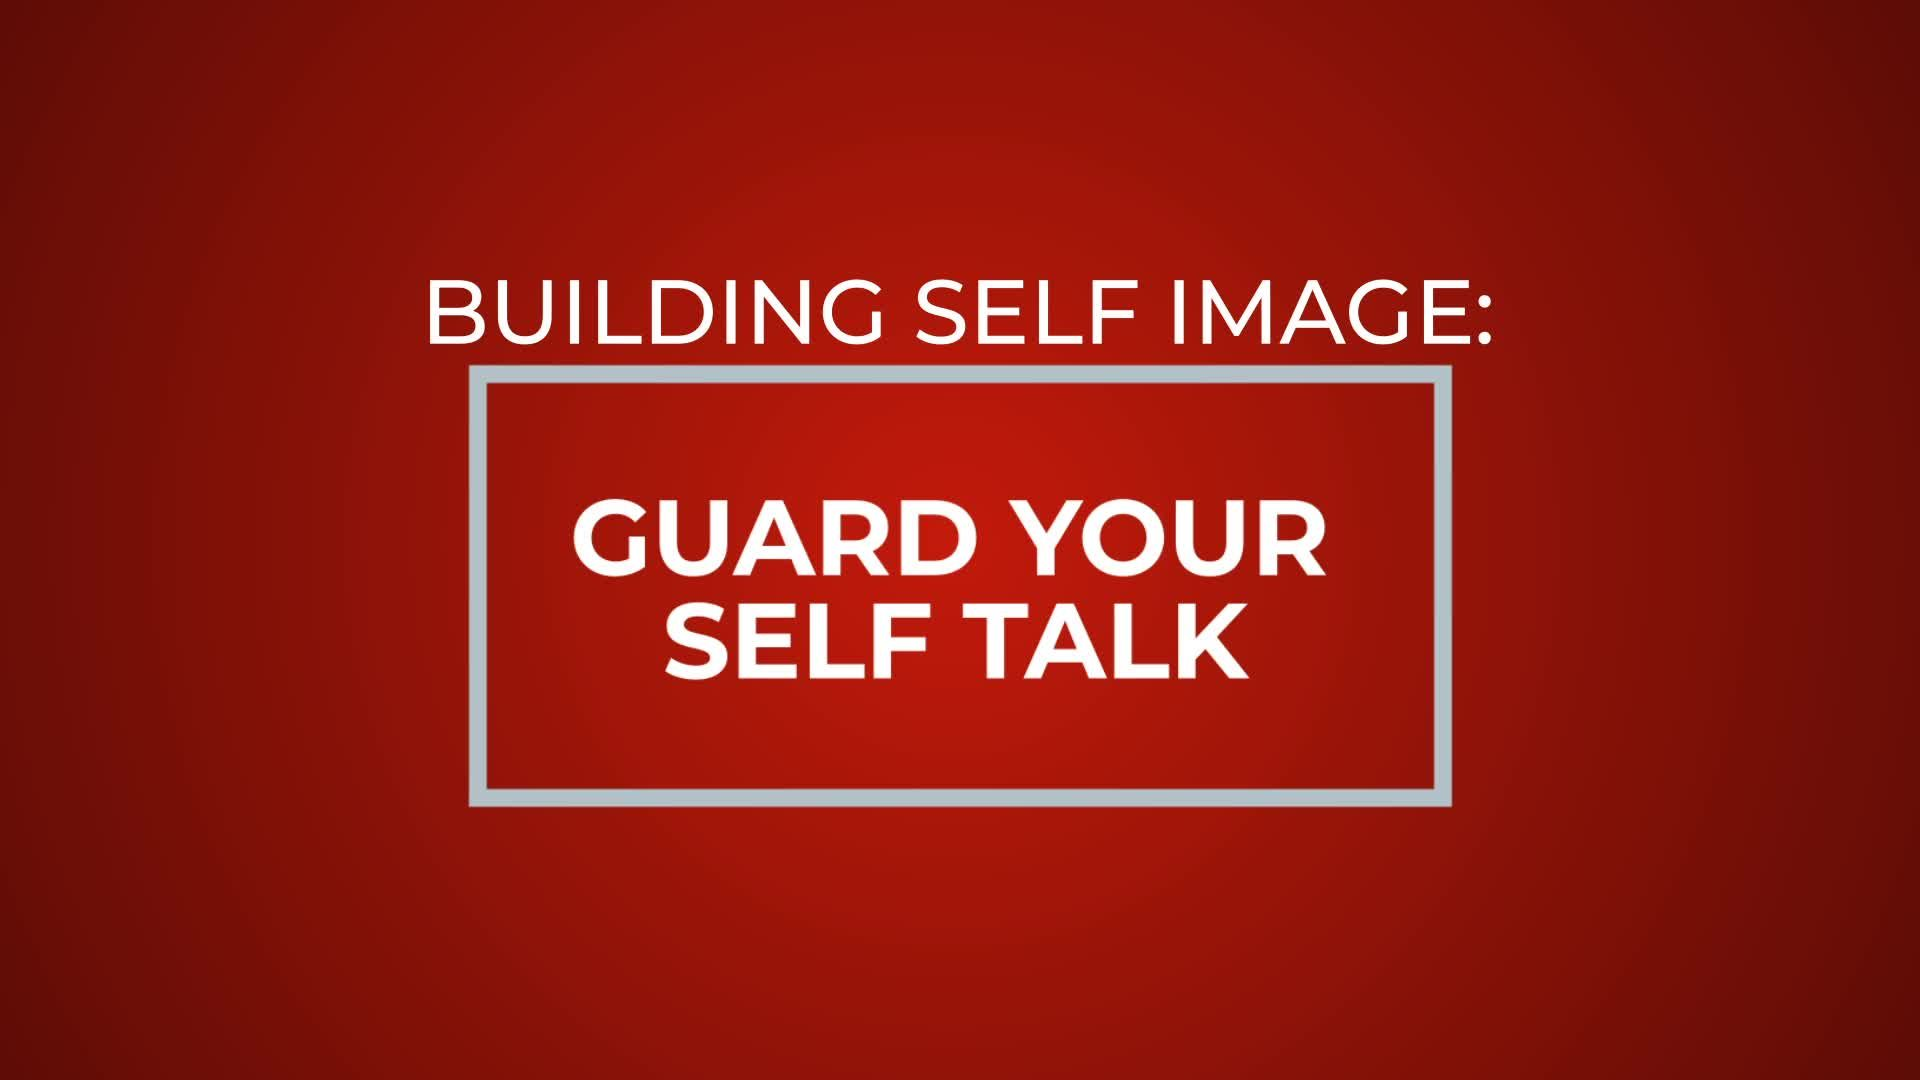 Guard Your Self Talk